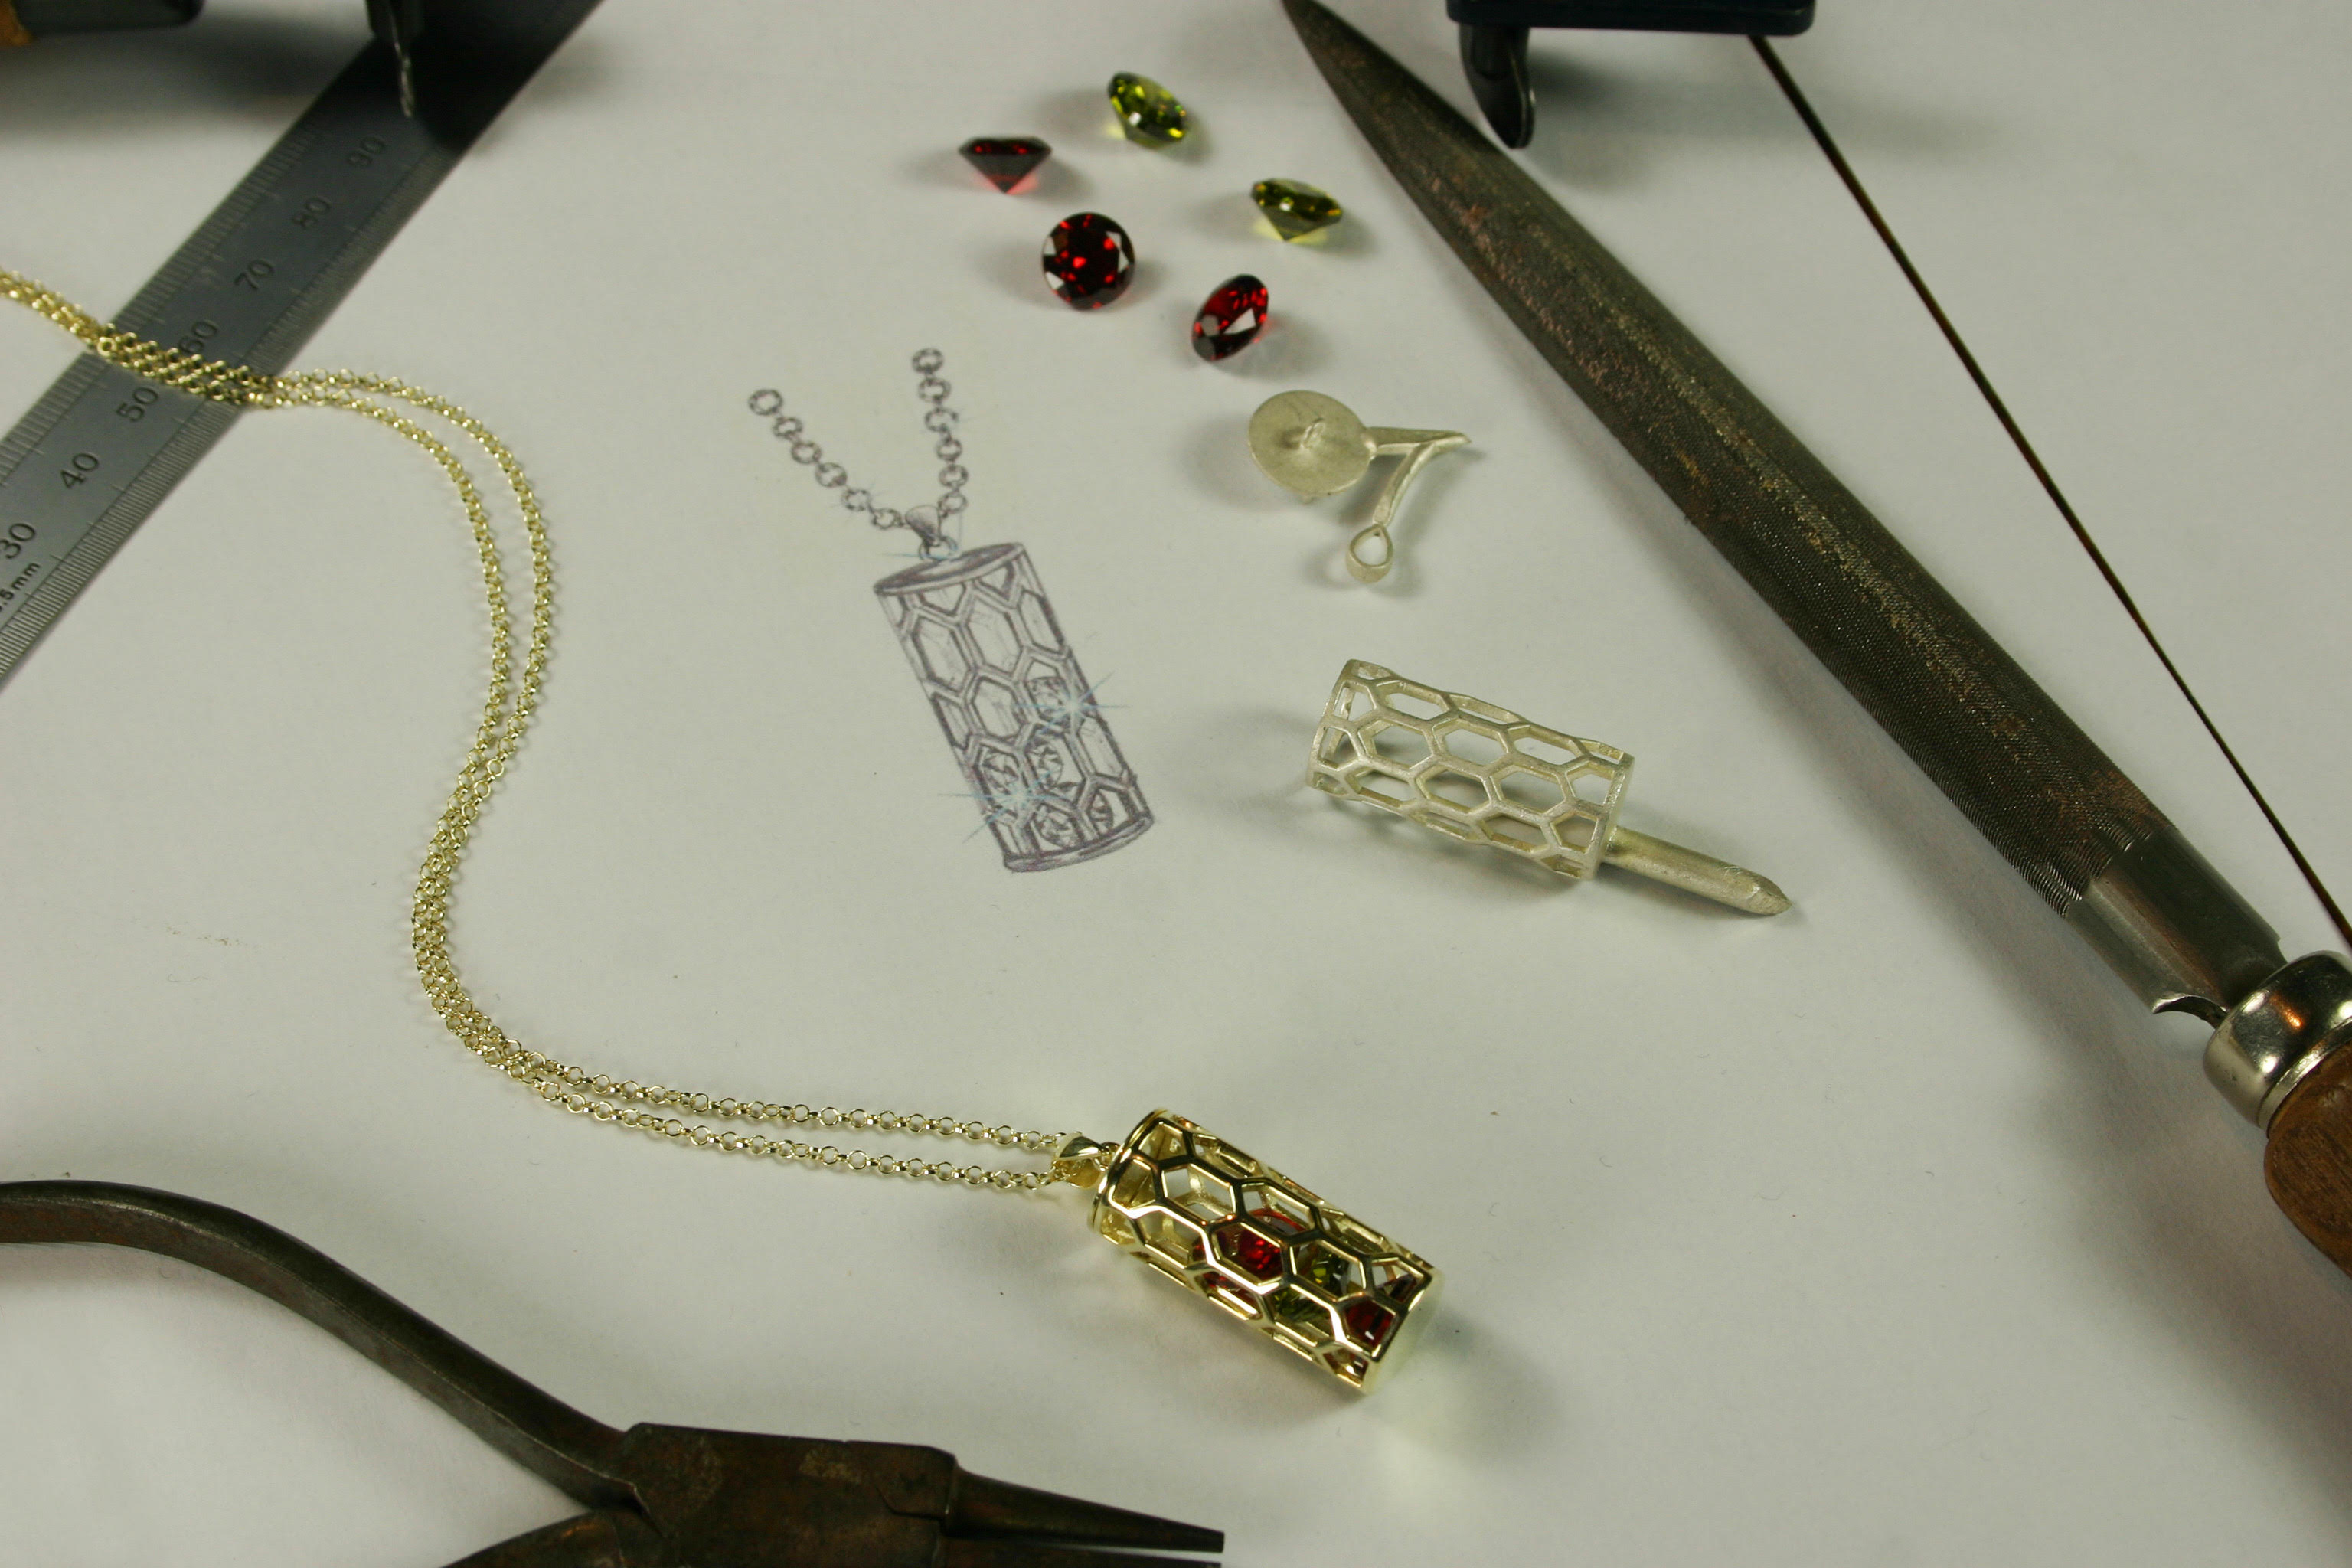 Jewellery Design Process for Henry VII Chantry Pieces